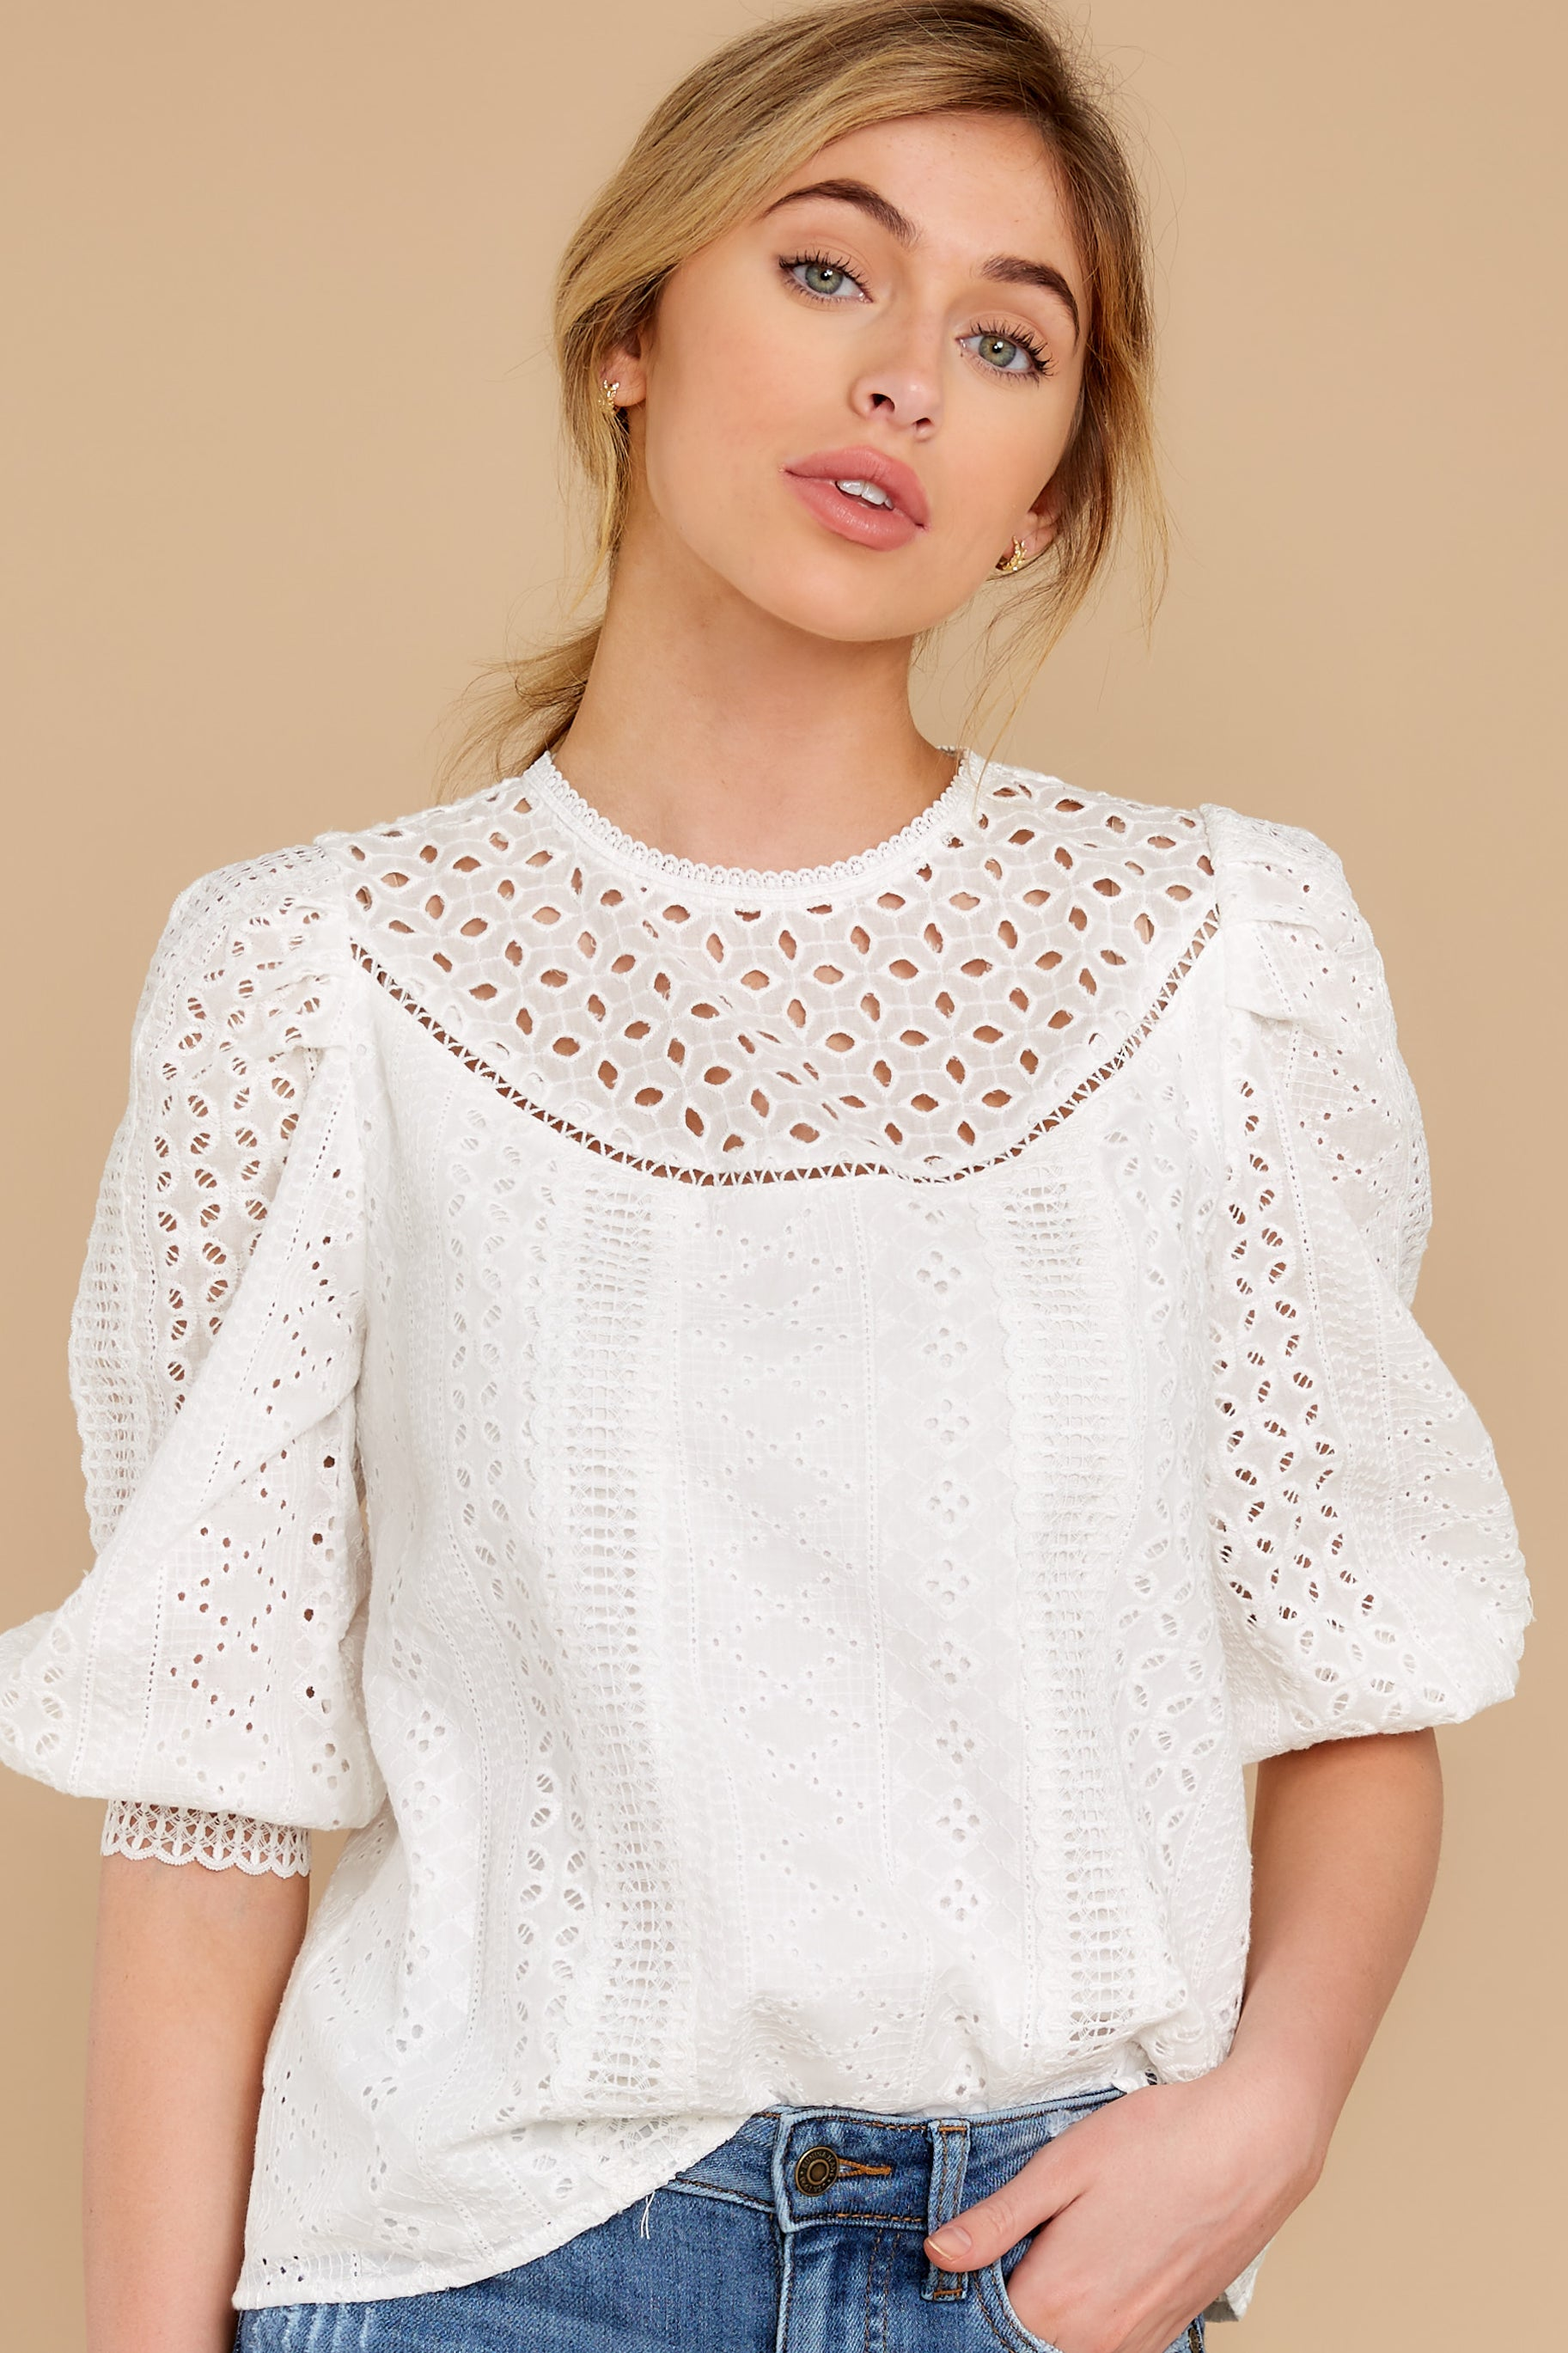 Women's 70s Shirts, Blouses, Hippie Tops Found The Light White Lace Top $52.00 AT vintagedancer.com